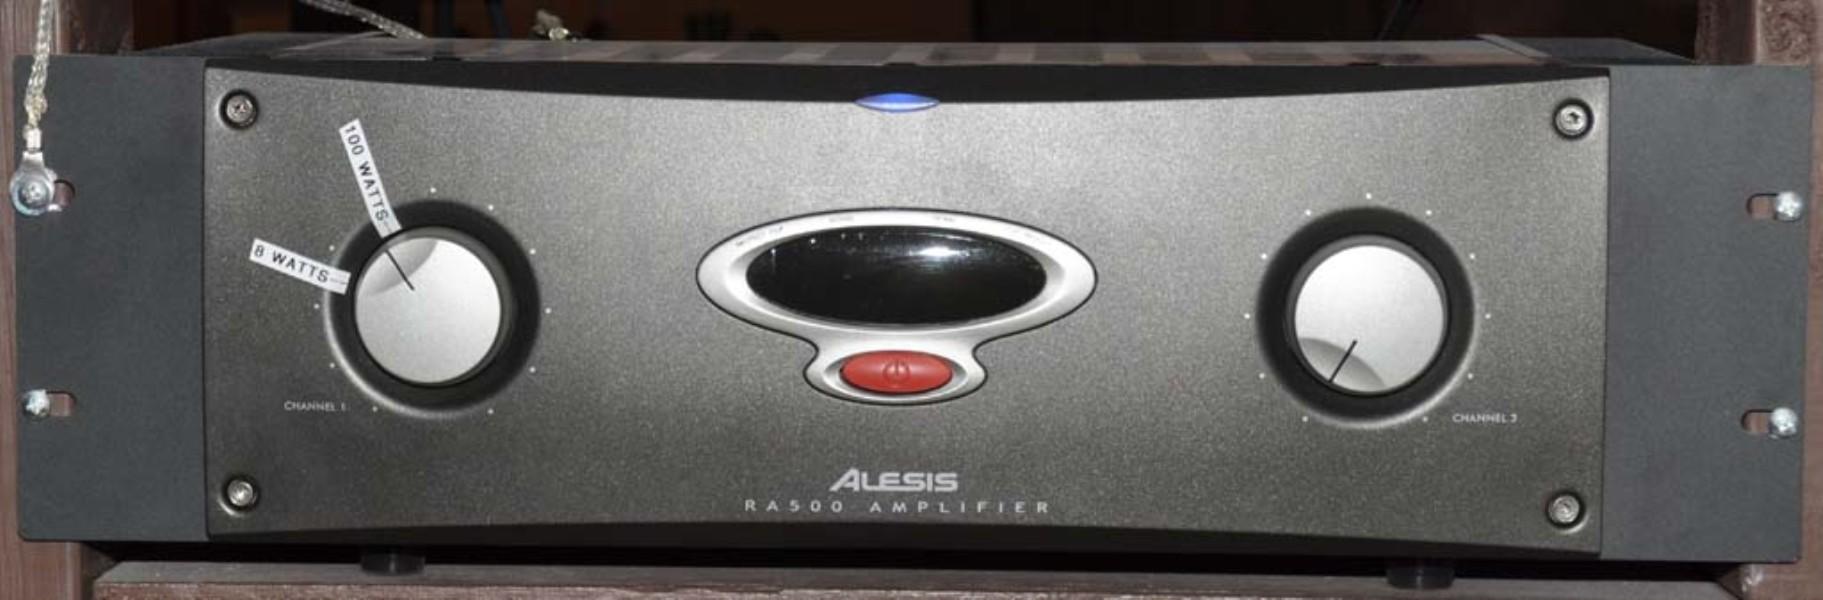 Alesis Studio Power Amplifiers Image collections - Diagram Writing Sample IDeas And Guide